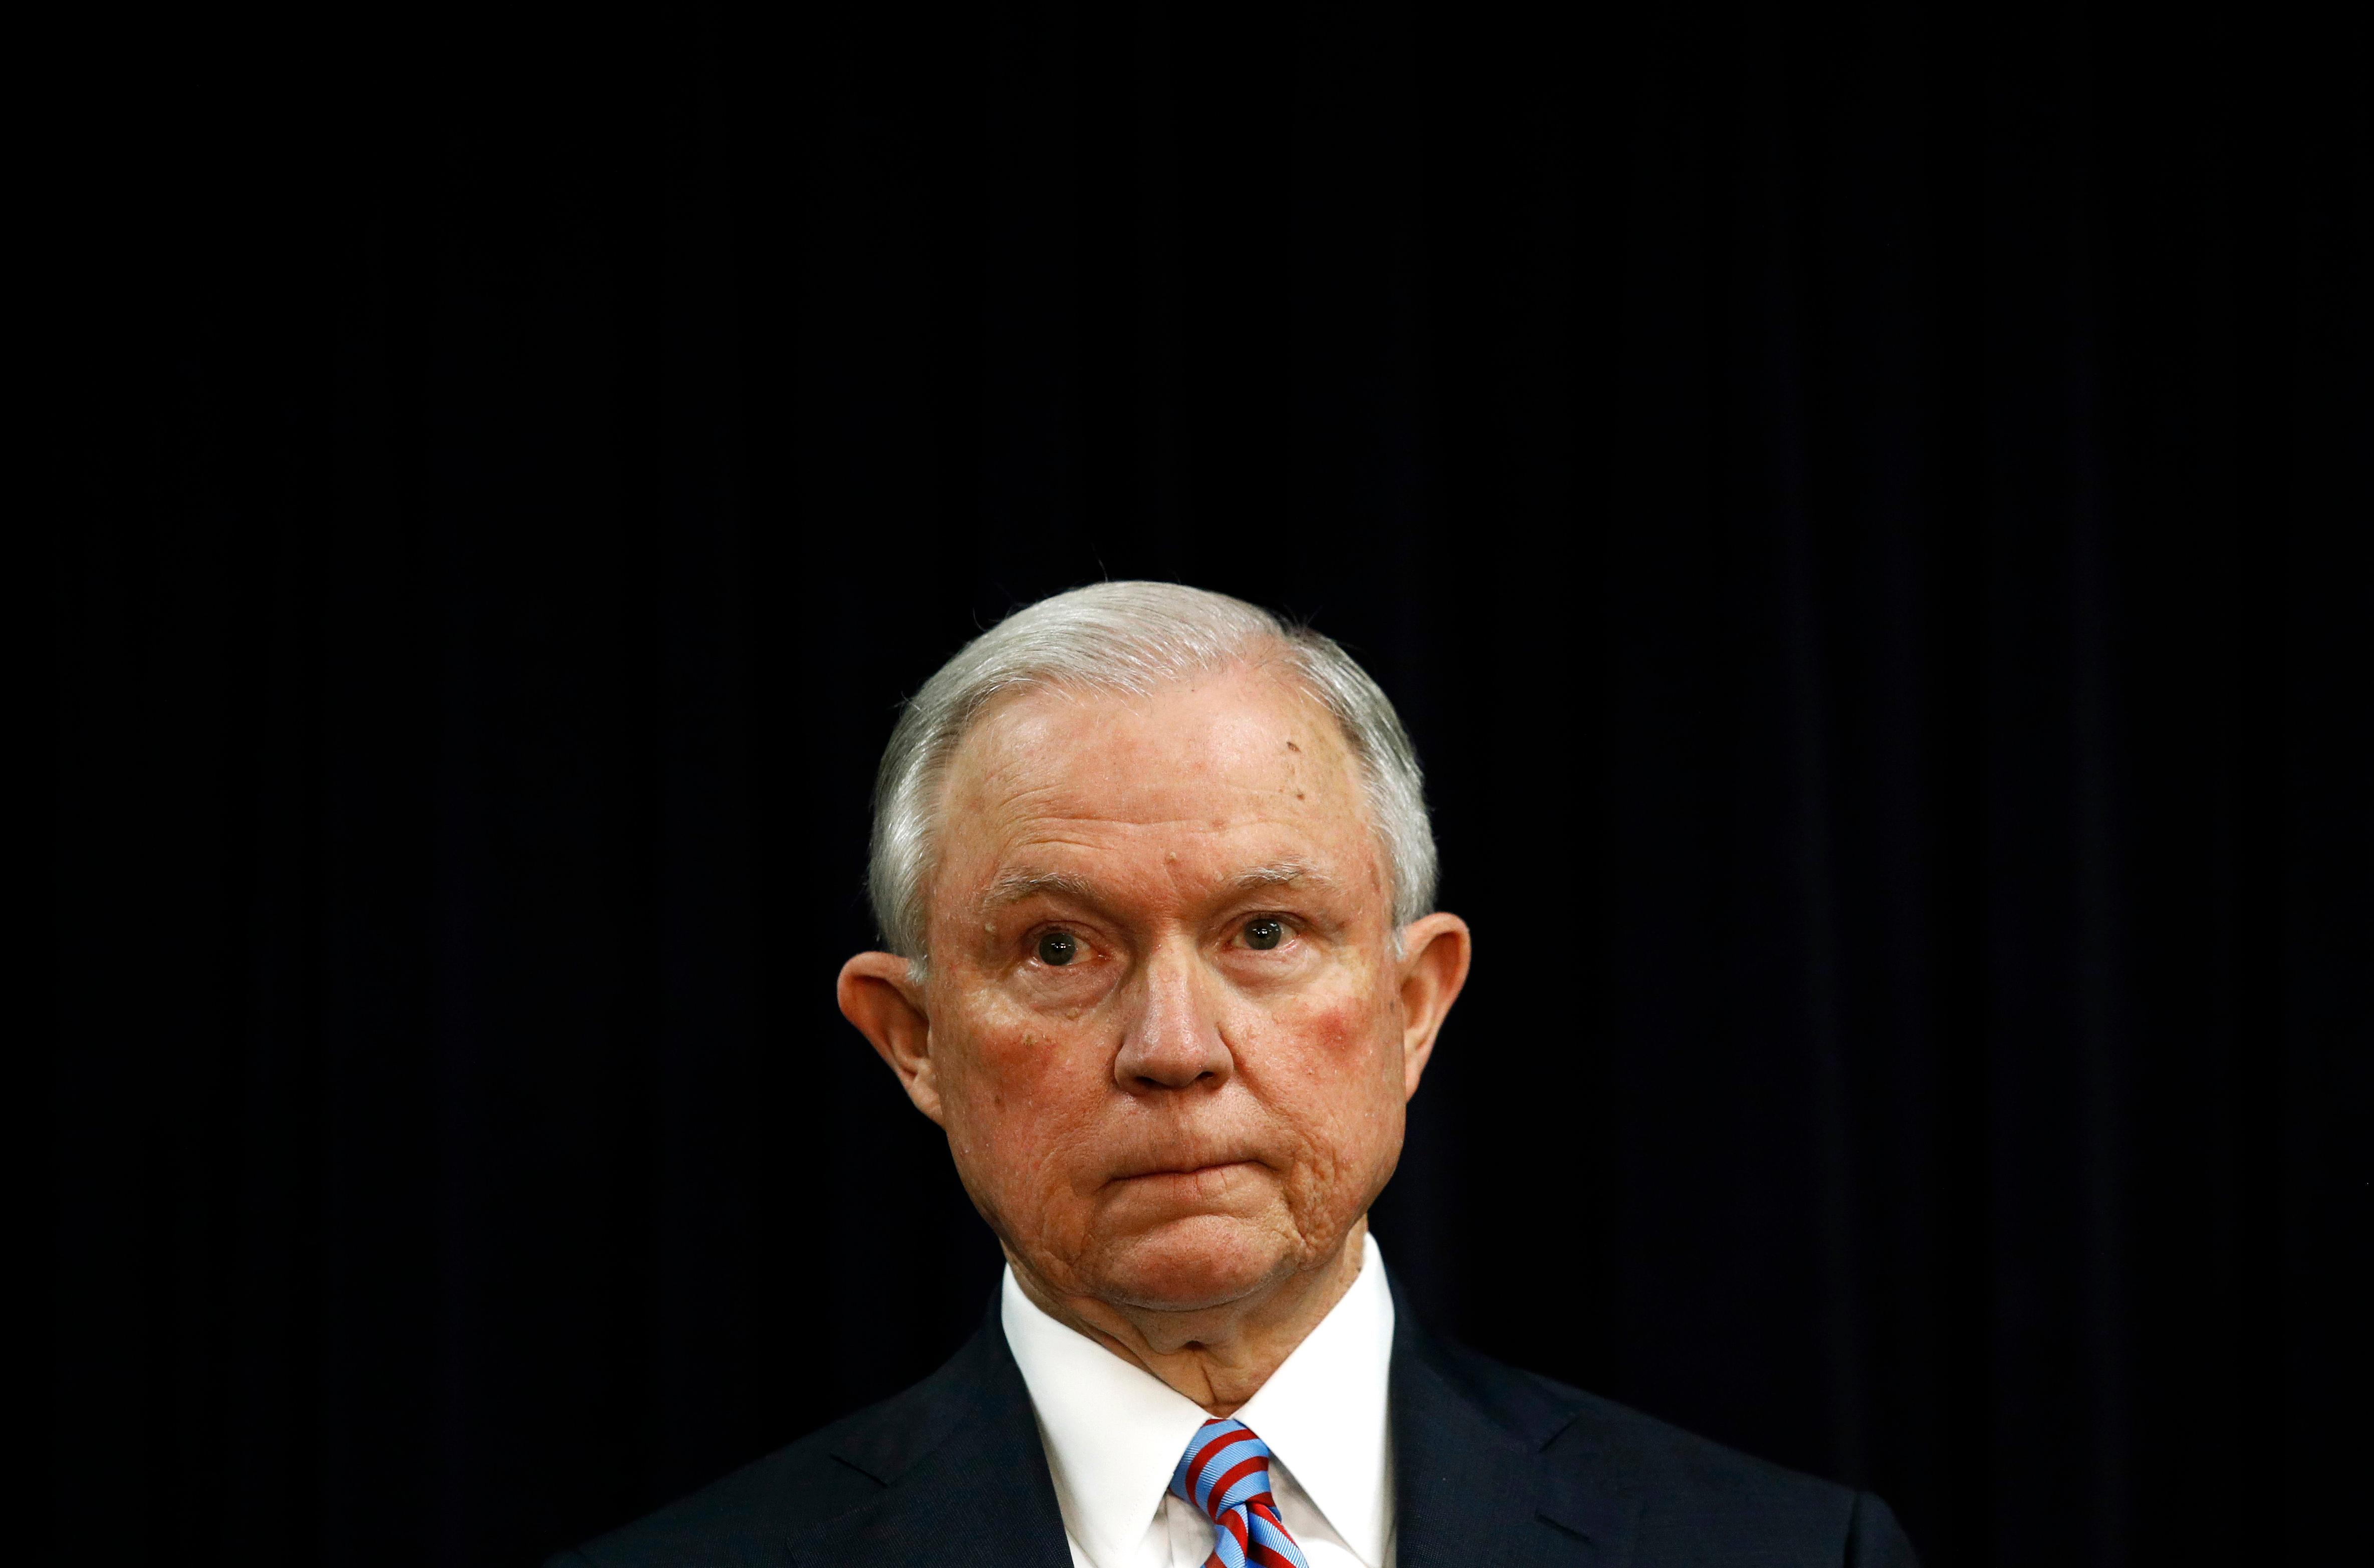 Attorney General Jeff Sessions listens as Secretary of Homeland Security Kirstjen Nielsen speaks during a news conference in Baltimore, Tuesday, Dec. 12, 2017, to announce efforts to combat the MS-13 street gang with law enforcement and immigration actions. (AP Photo/Patrick Semansky)